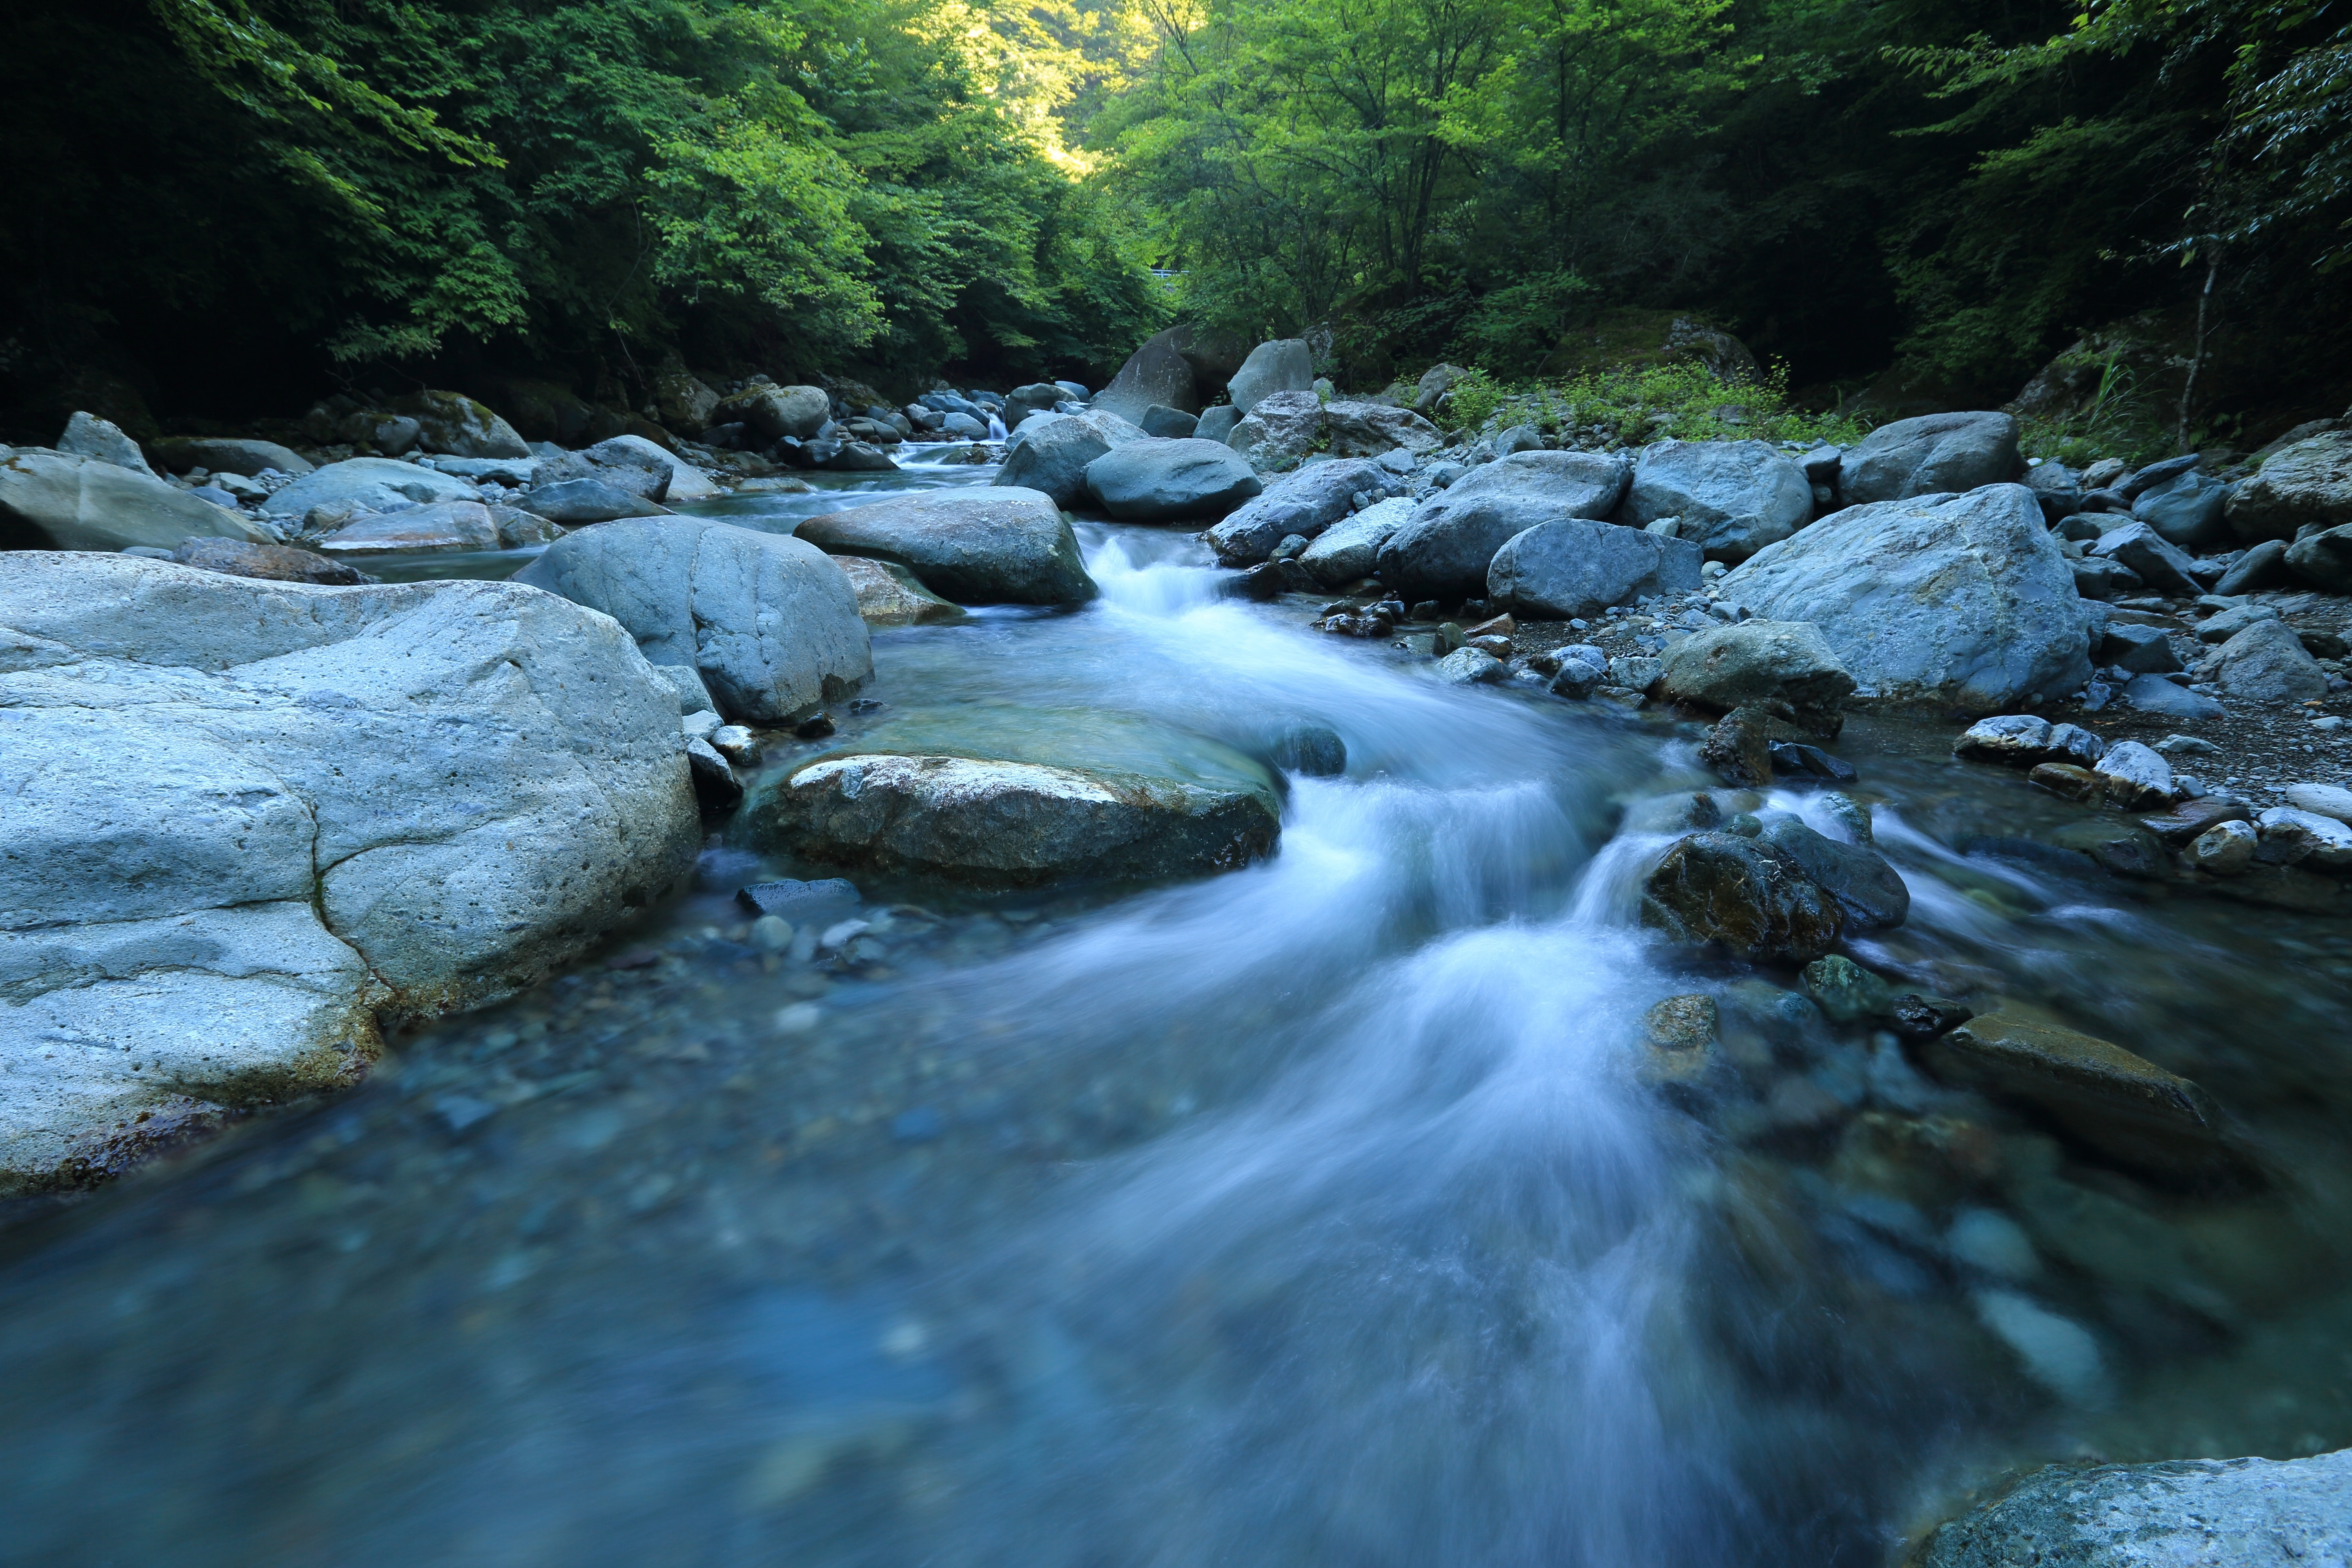 Water rushes through a rocky river in the woods